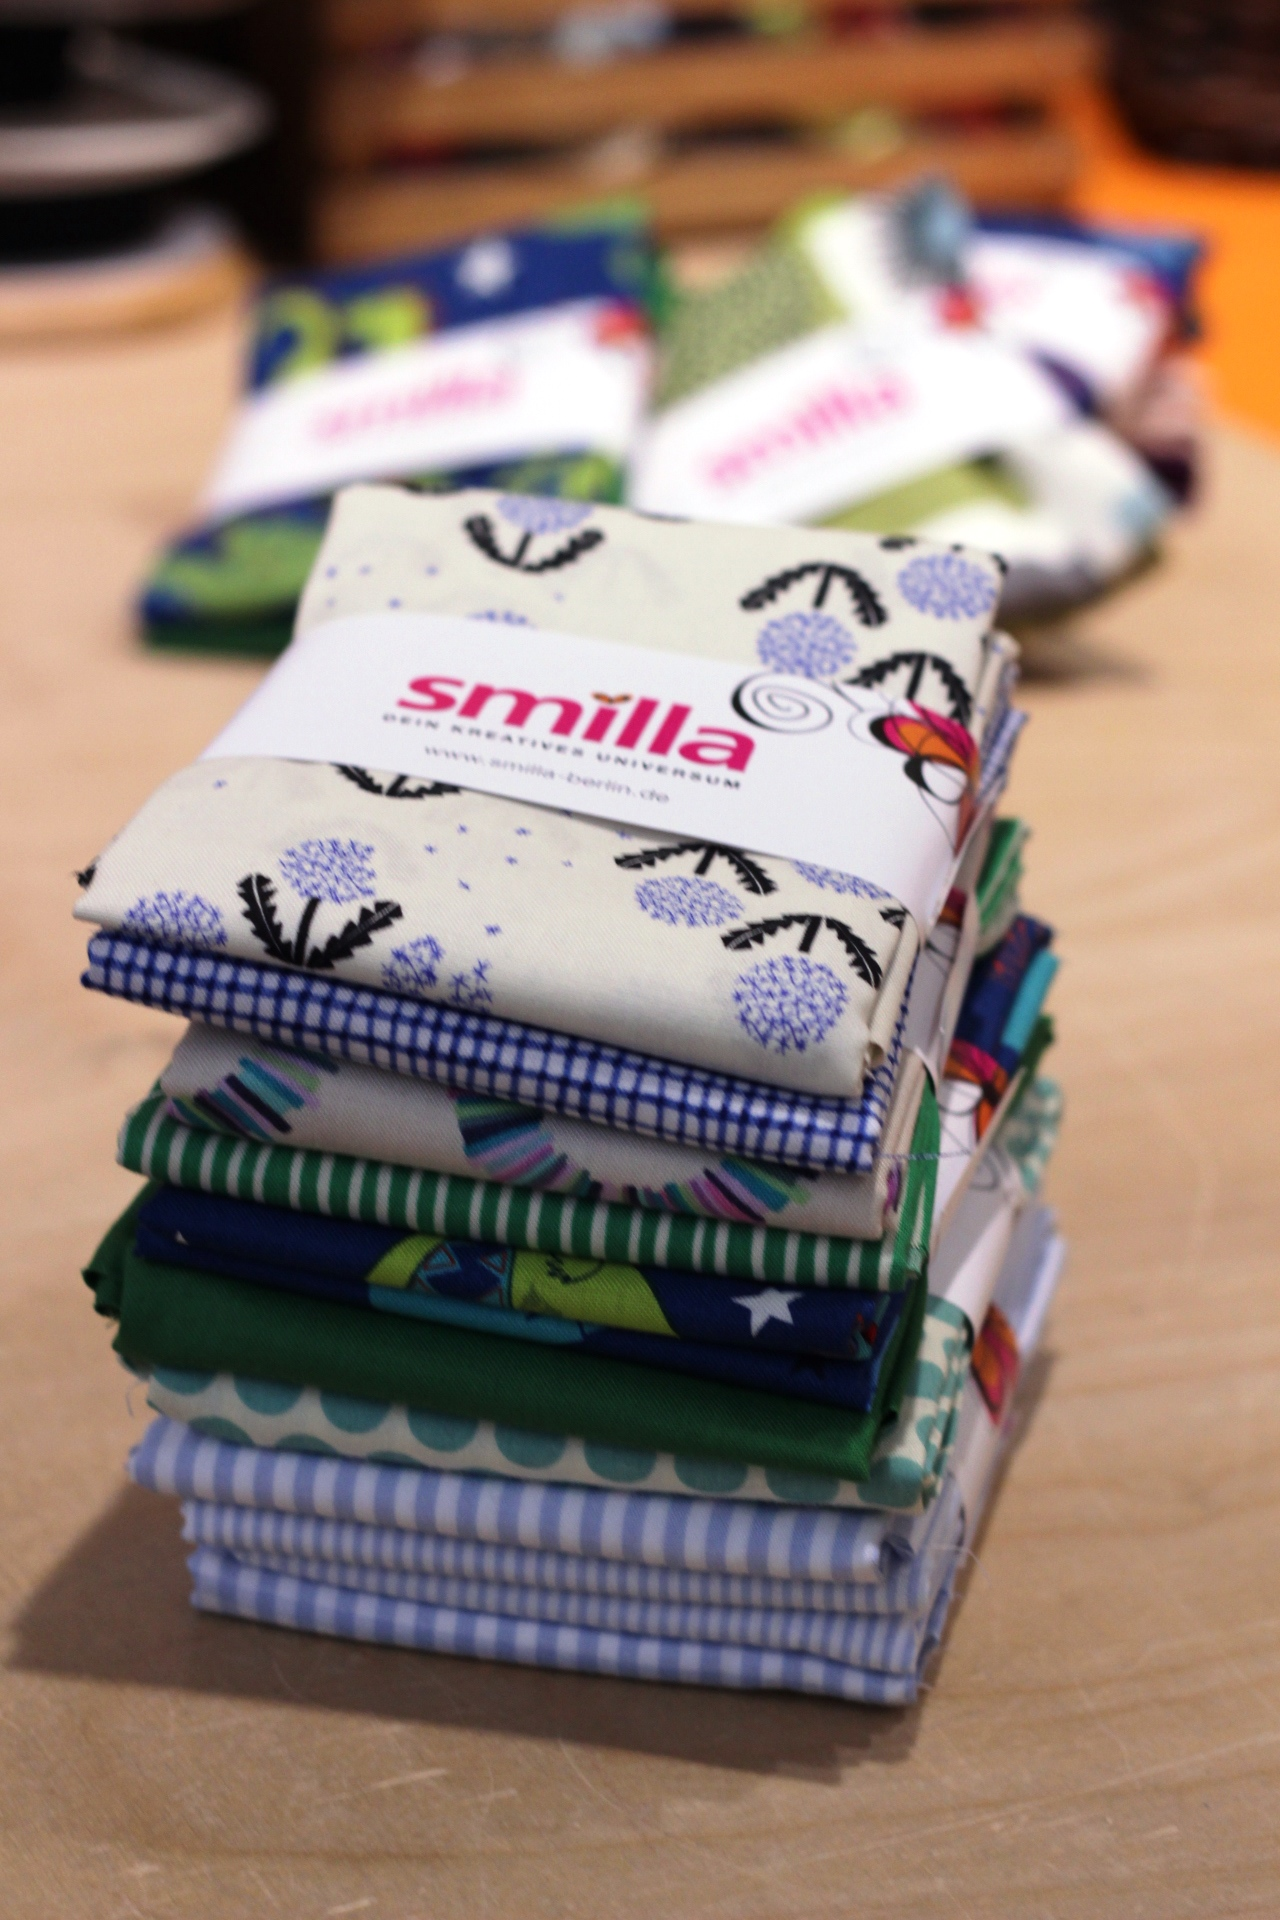 Fat quarter collection smilla